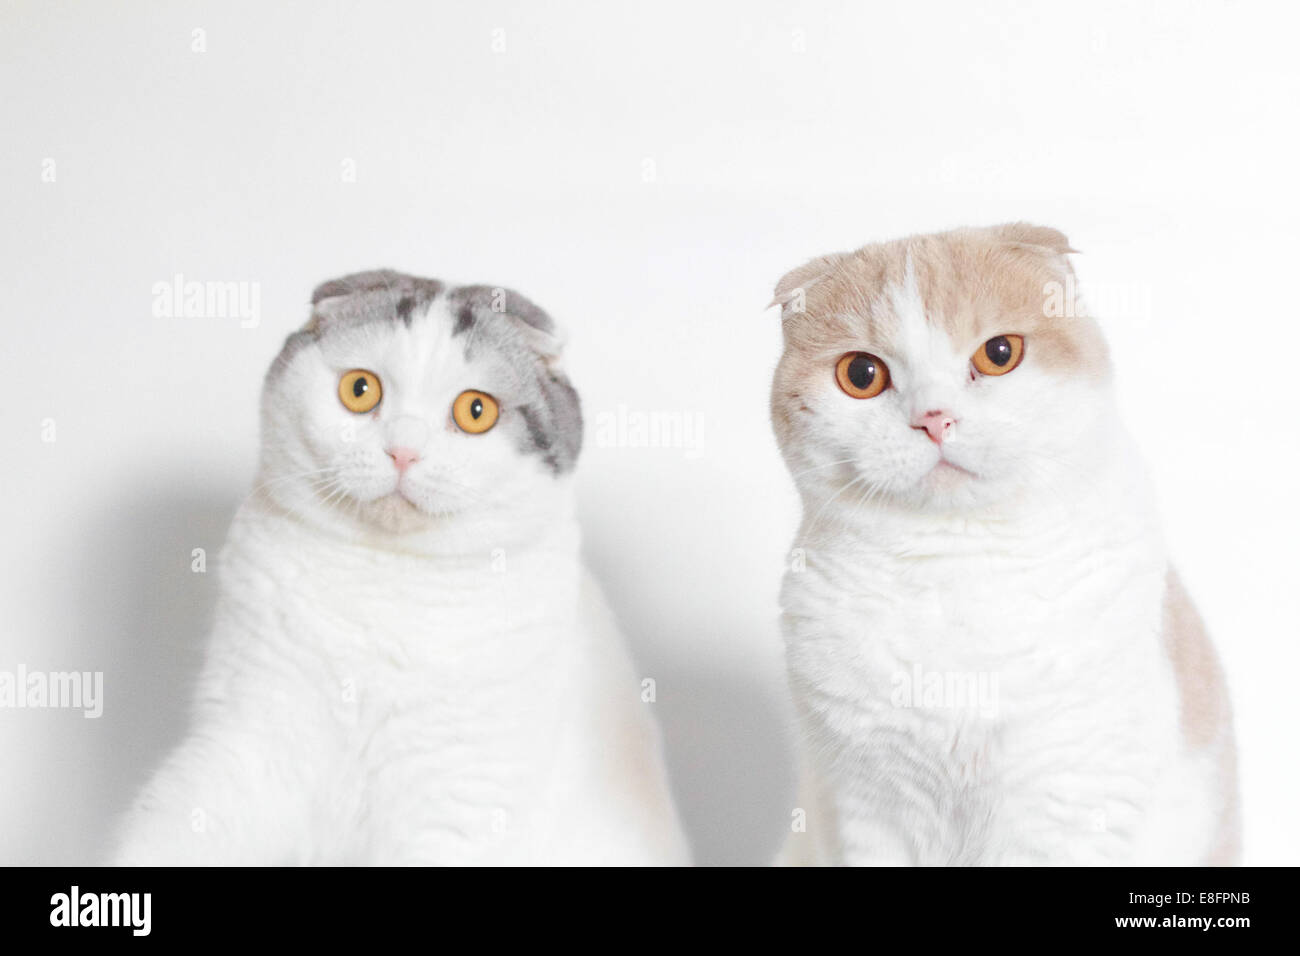 Studio shot of two Scottish folds looking puzzled - Stock Image